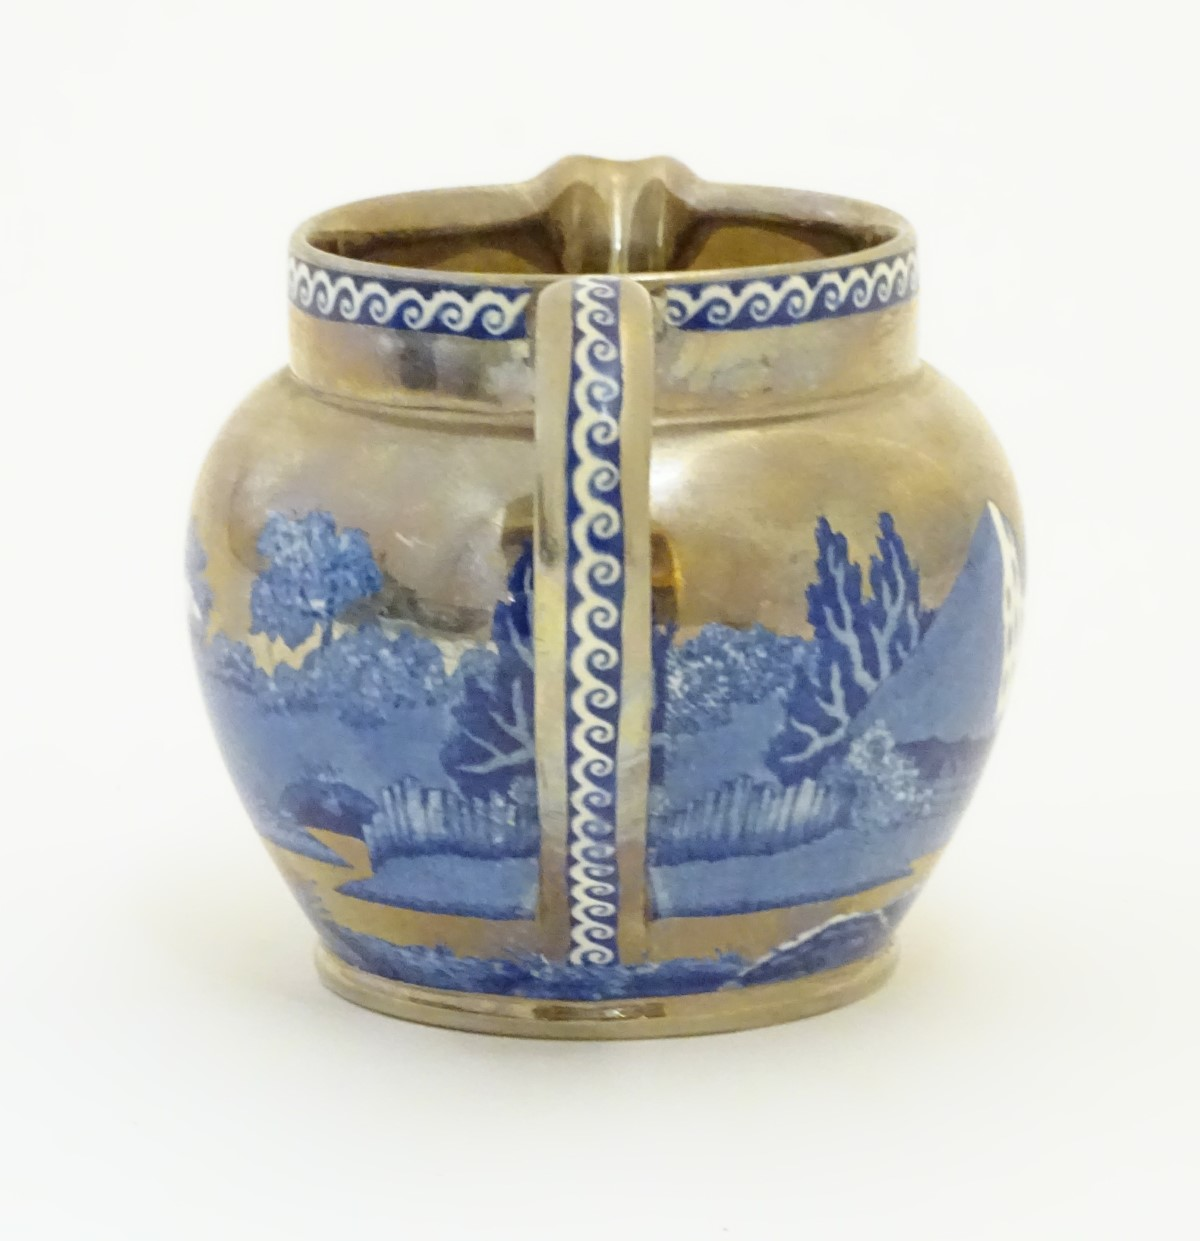 Lot 39 - A Wedgwood of Etruria & Barlaston blue and white lustre cream jug in the pattern 'Fallow Deer',